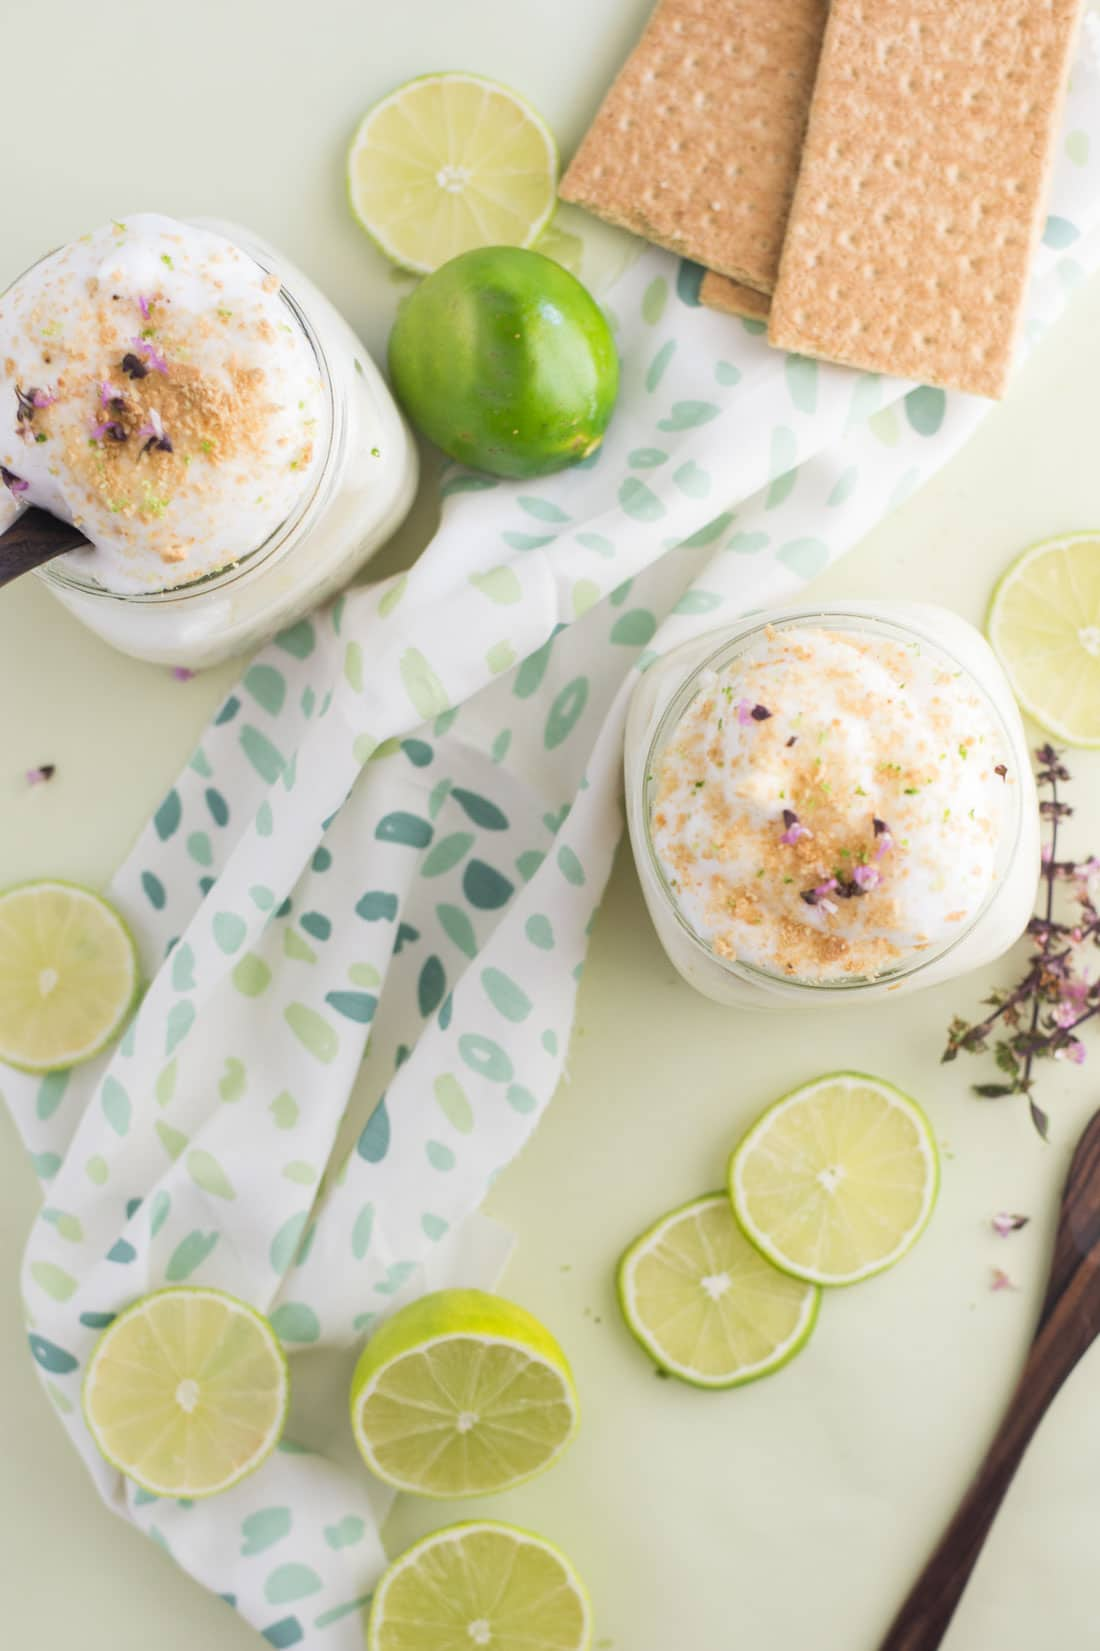 Vegan Key Lime Pie Parfaits -- What's better than key lime pie? Vegan key lime pie parfaits of course! Graham cracker crust, lime curd, and aquafaba whip cream make up the layers of this parfait. You won't believe how easy this dessert recipe is to make not to mention how delicious it is! - mindfulavocado